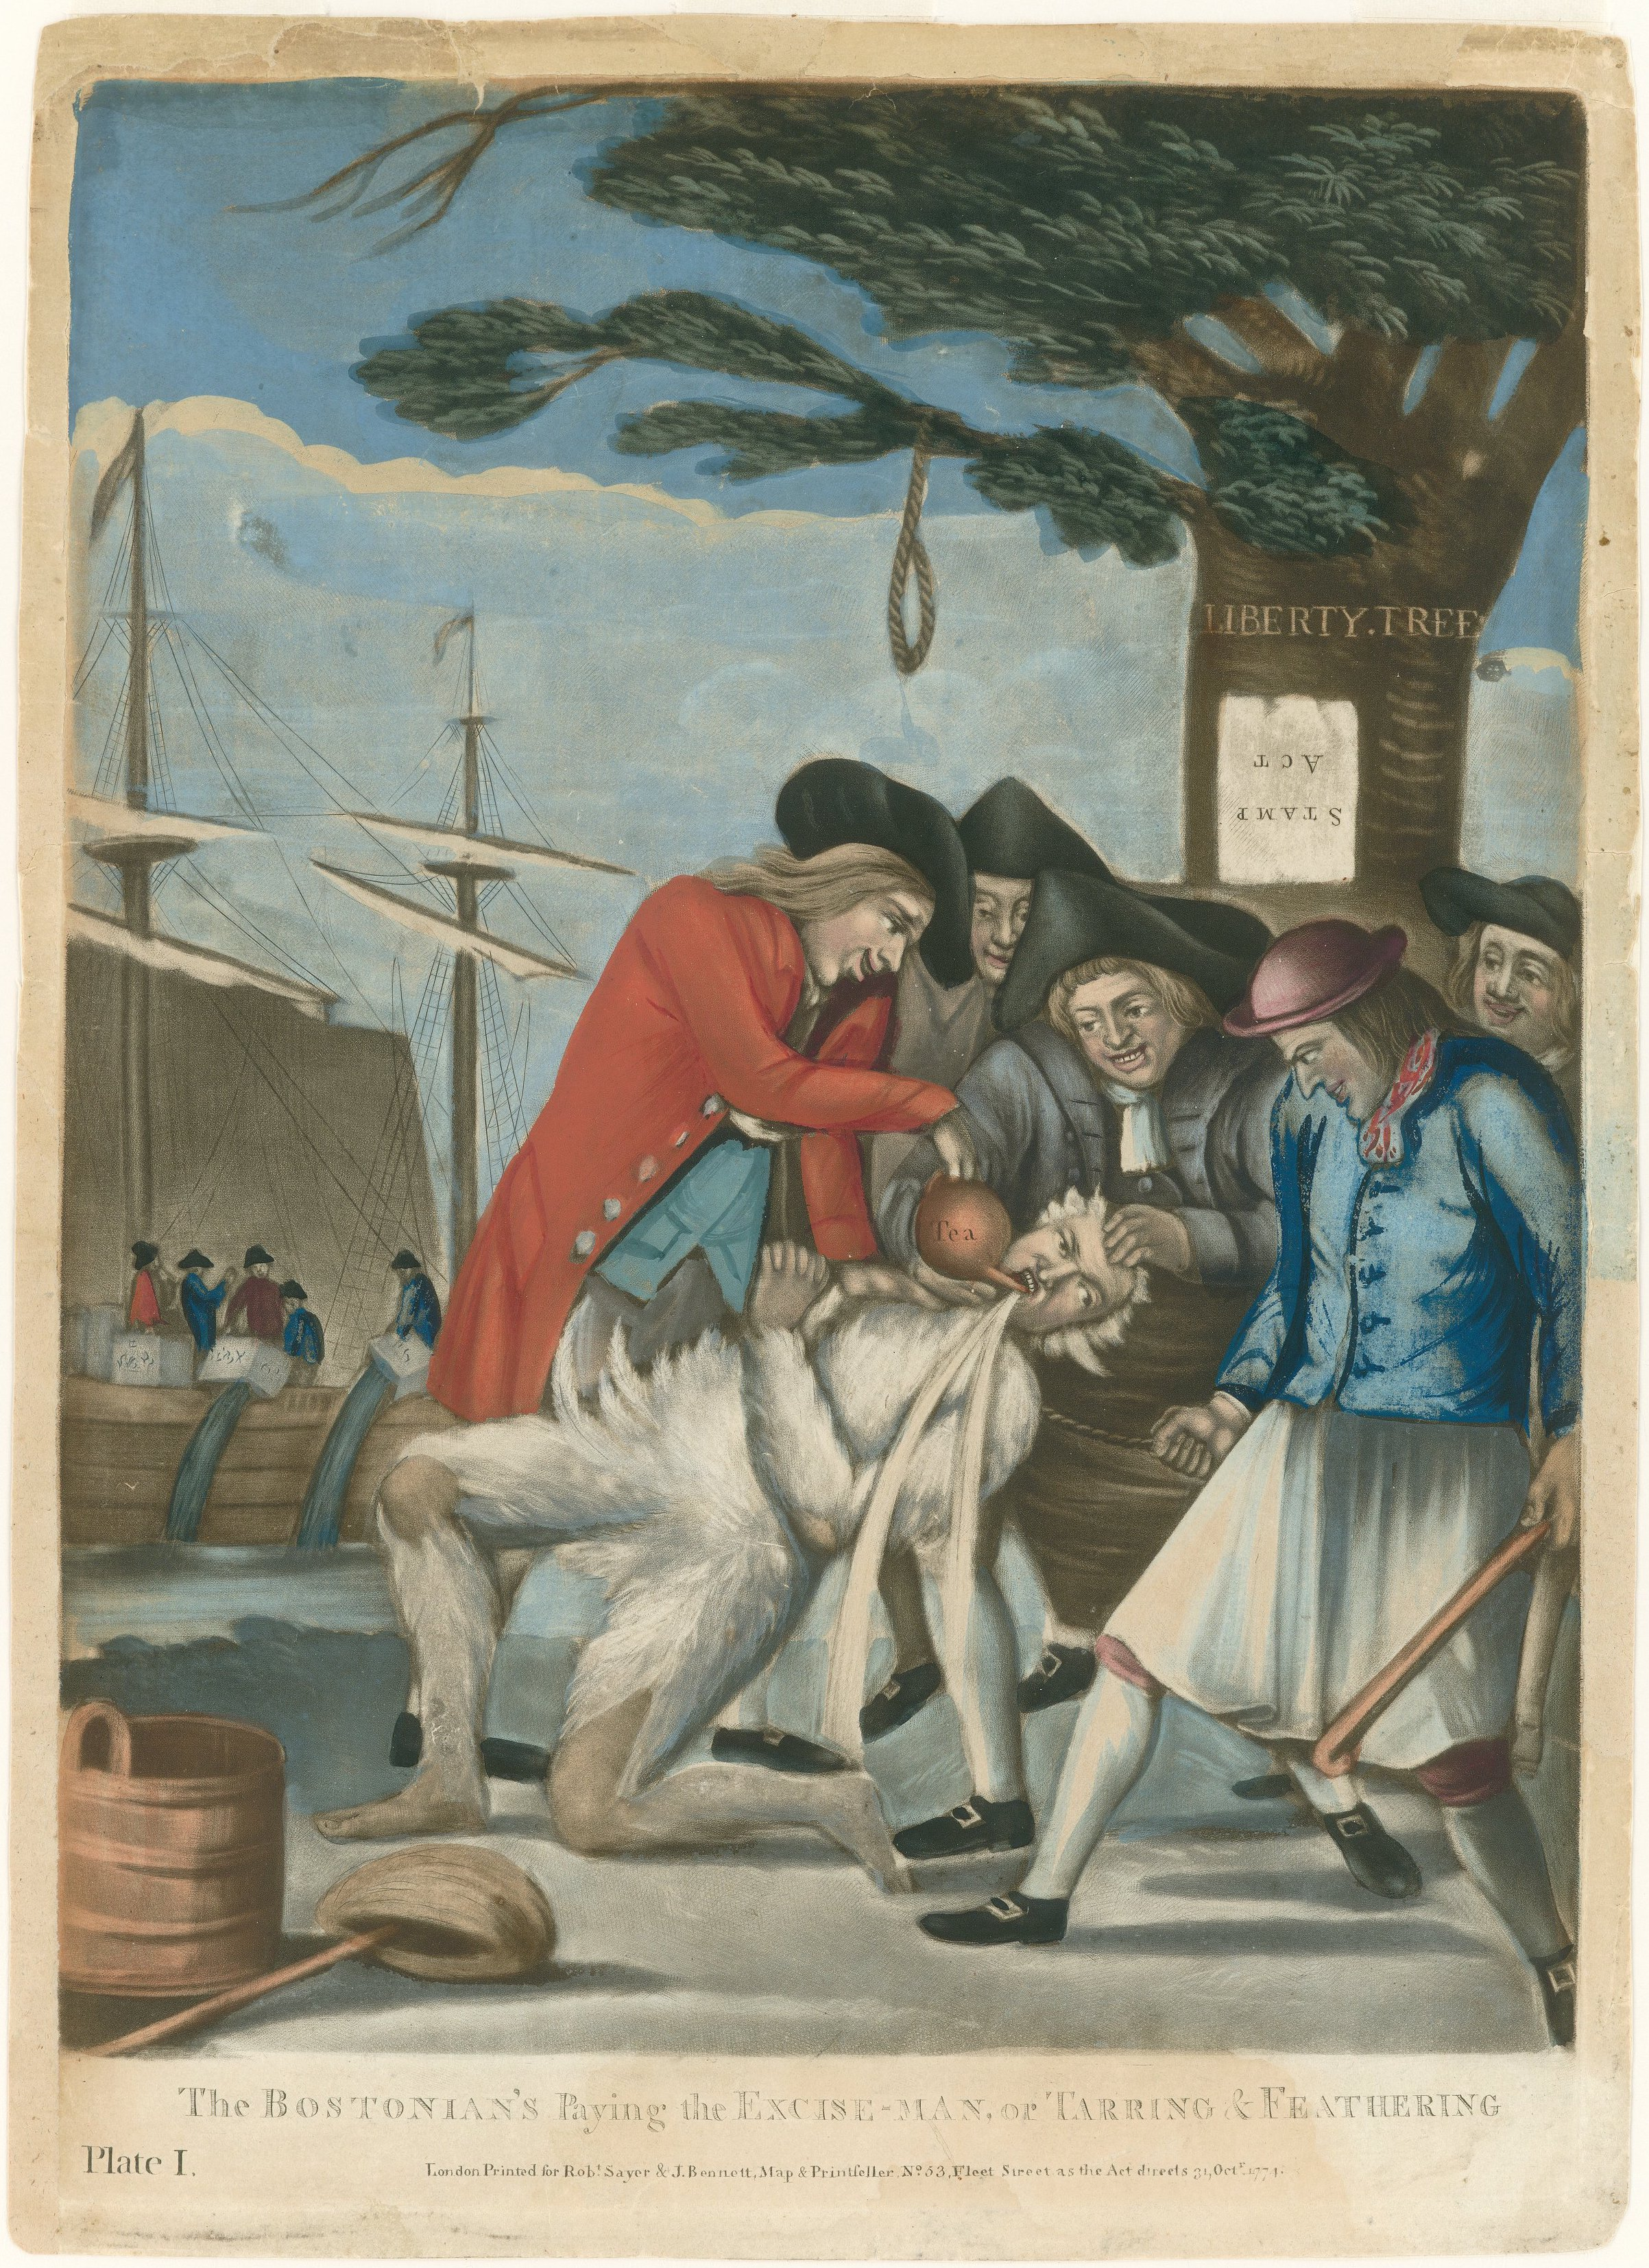 The Bostonian Paying the Excise-Man, 1774 British propaganda print referring to the tarring and feathering of Boston Commissioner of Customs John Malcolm four weeks after the Boston Tea Party. The men also poured hot tea down Malcolm's throat, as can be seen. Note the noose hanging on the Liberty Tree, and the Stamp Act posted upside-down